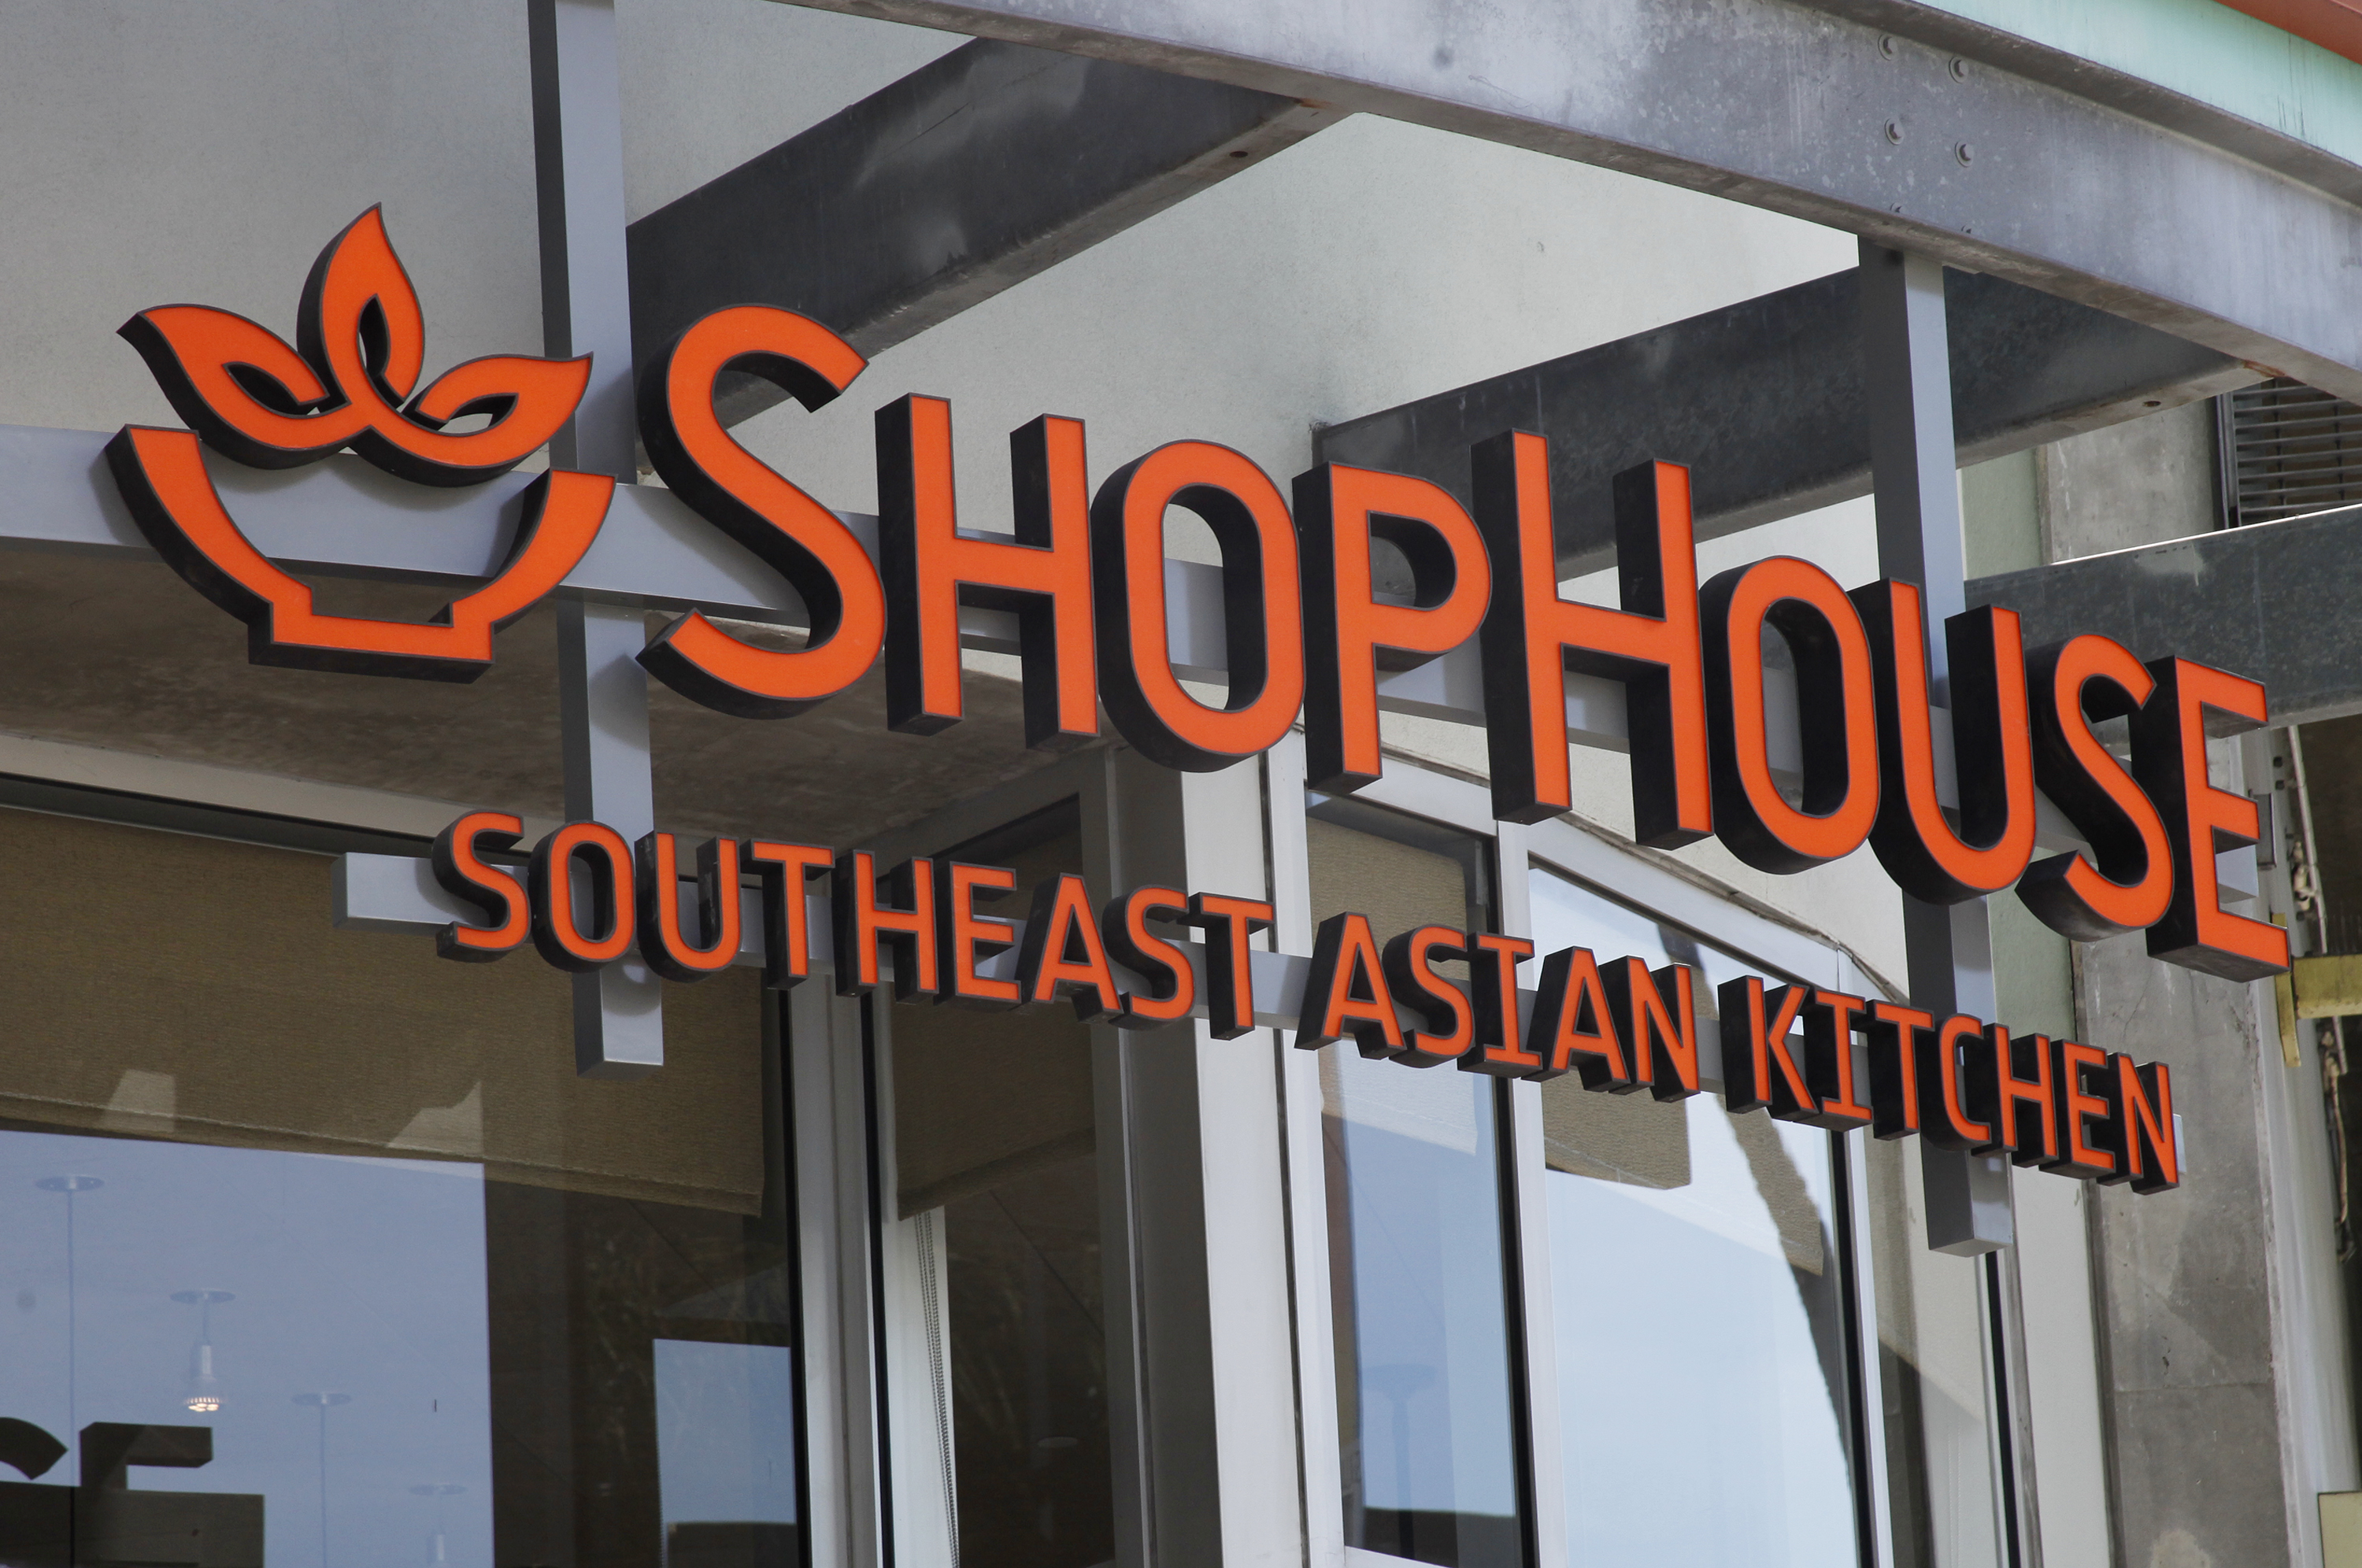 A ShopHouse Southeast Asian Kitchen is pictured in Hollywood, California